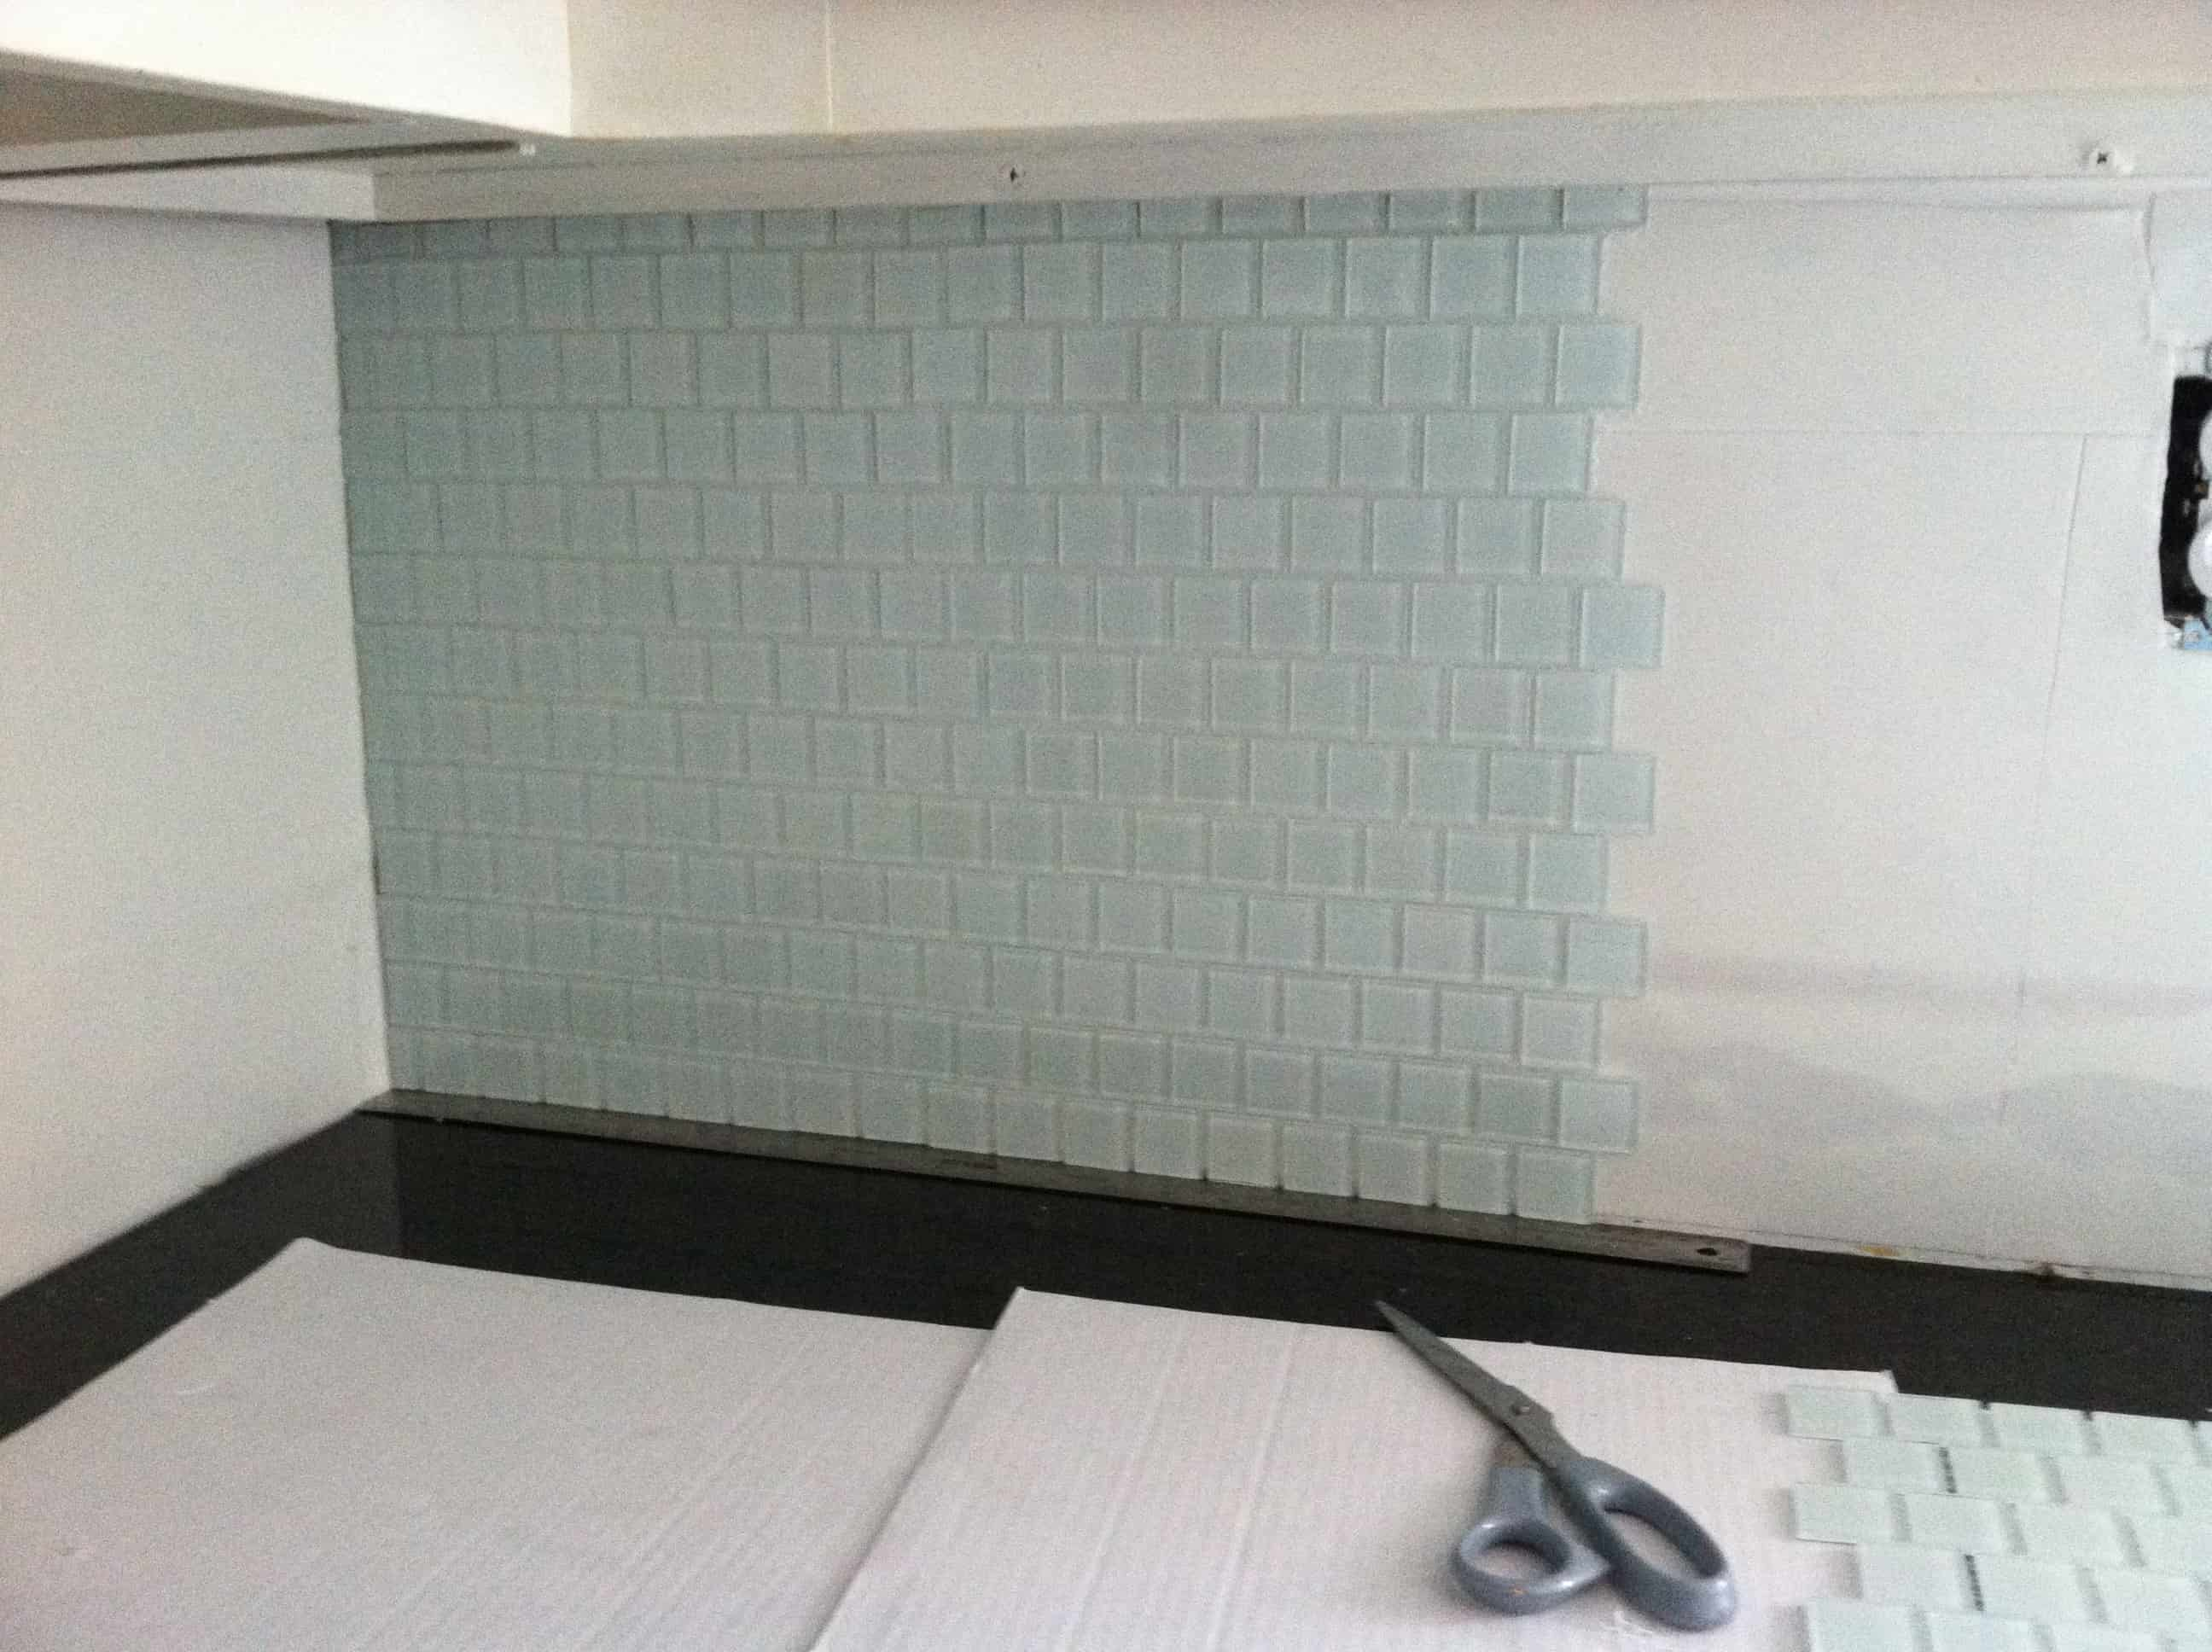 Musselbound Tile Mat Review- Sheets of Musselbound Tile applied to the wall with sheets of glass tile pressed on to them